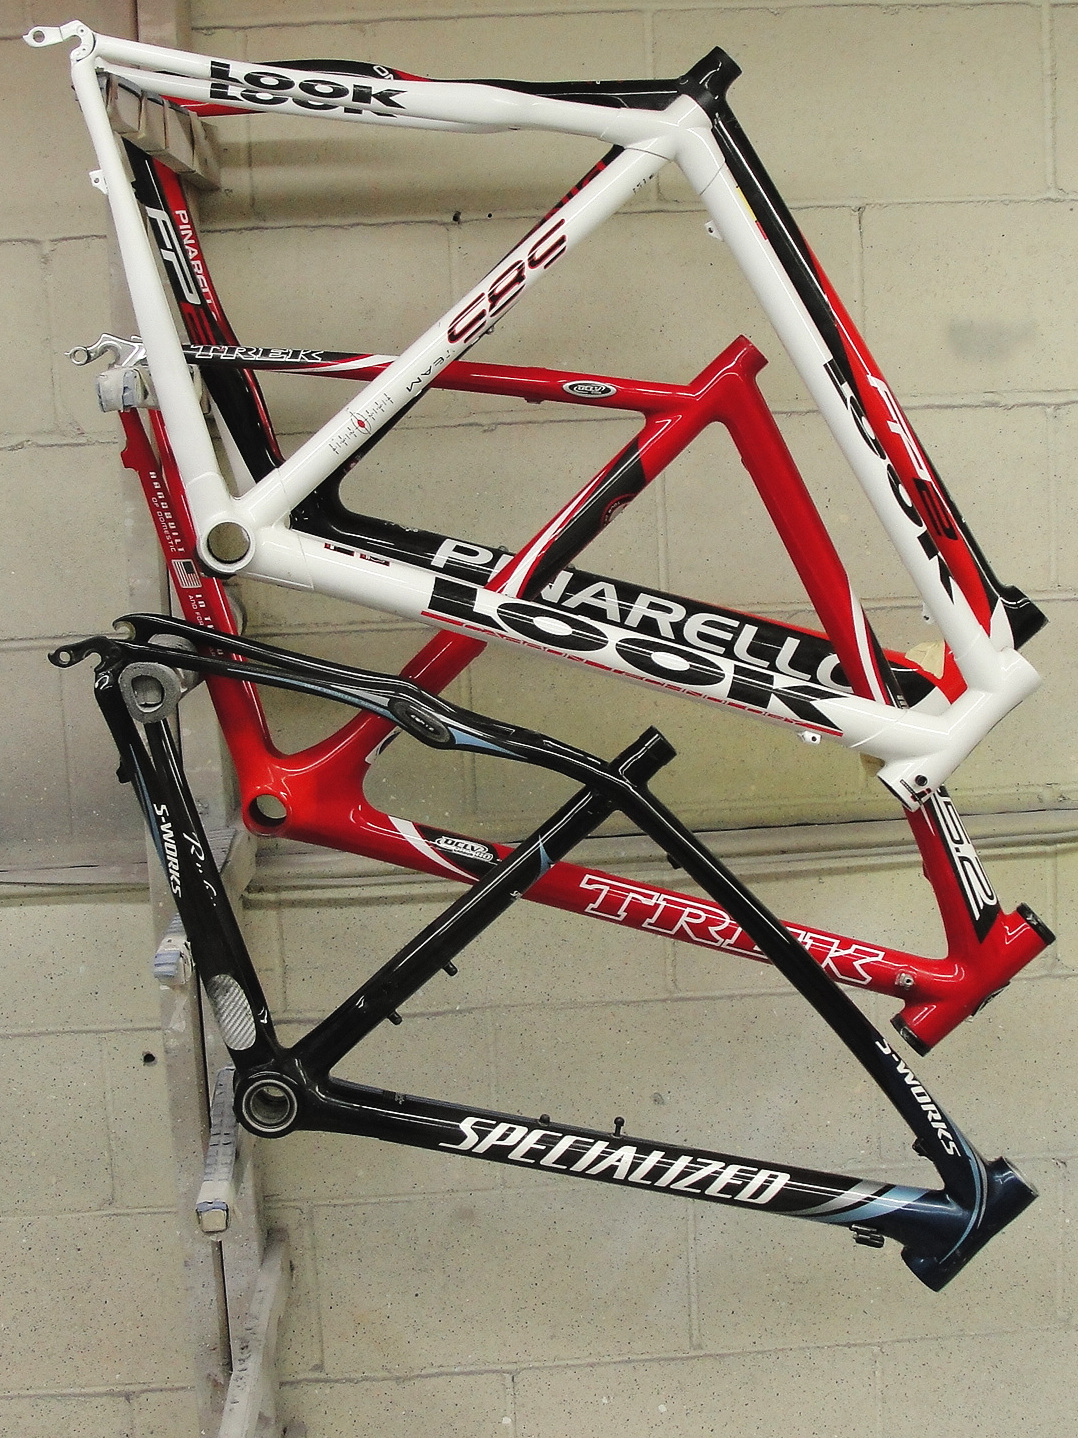 Carbon Bike Repair - Fractured, cracked, broken, or busted, we can fix just about any carbon frame.